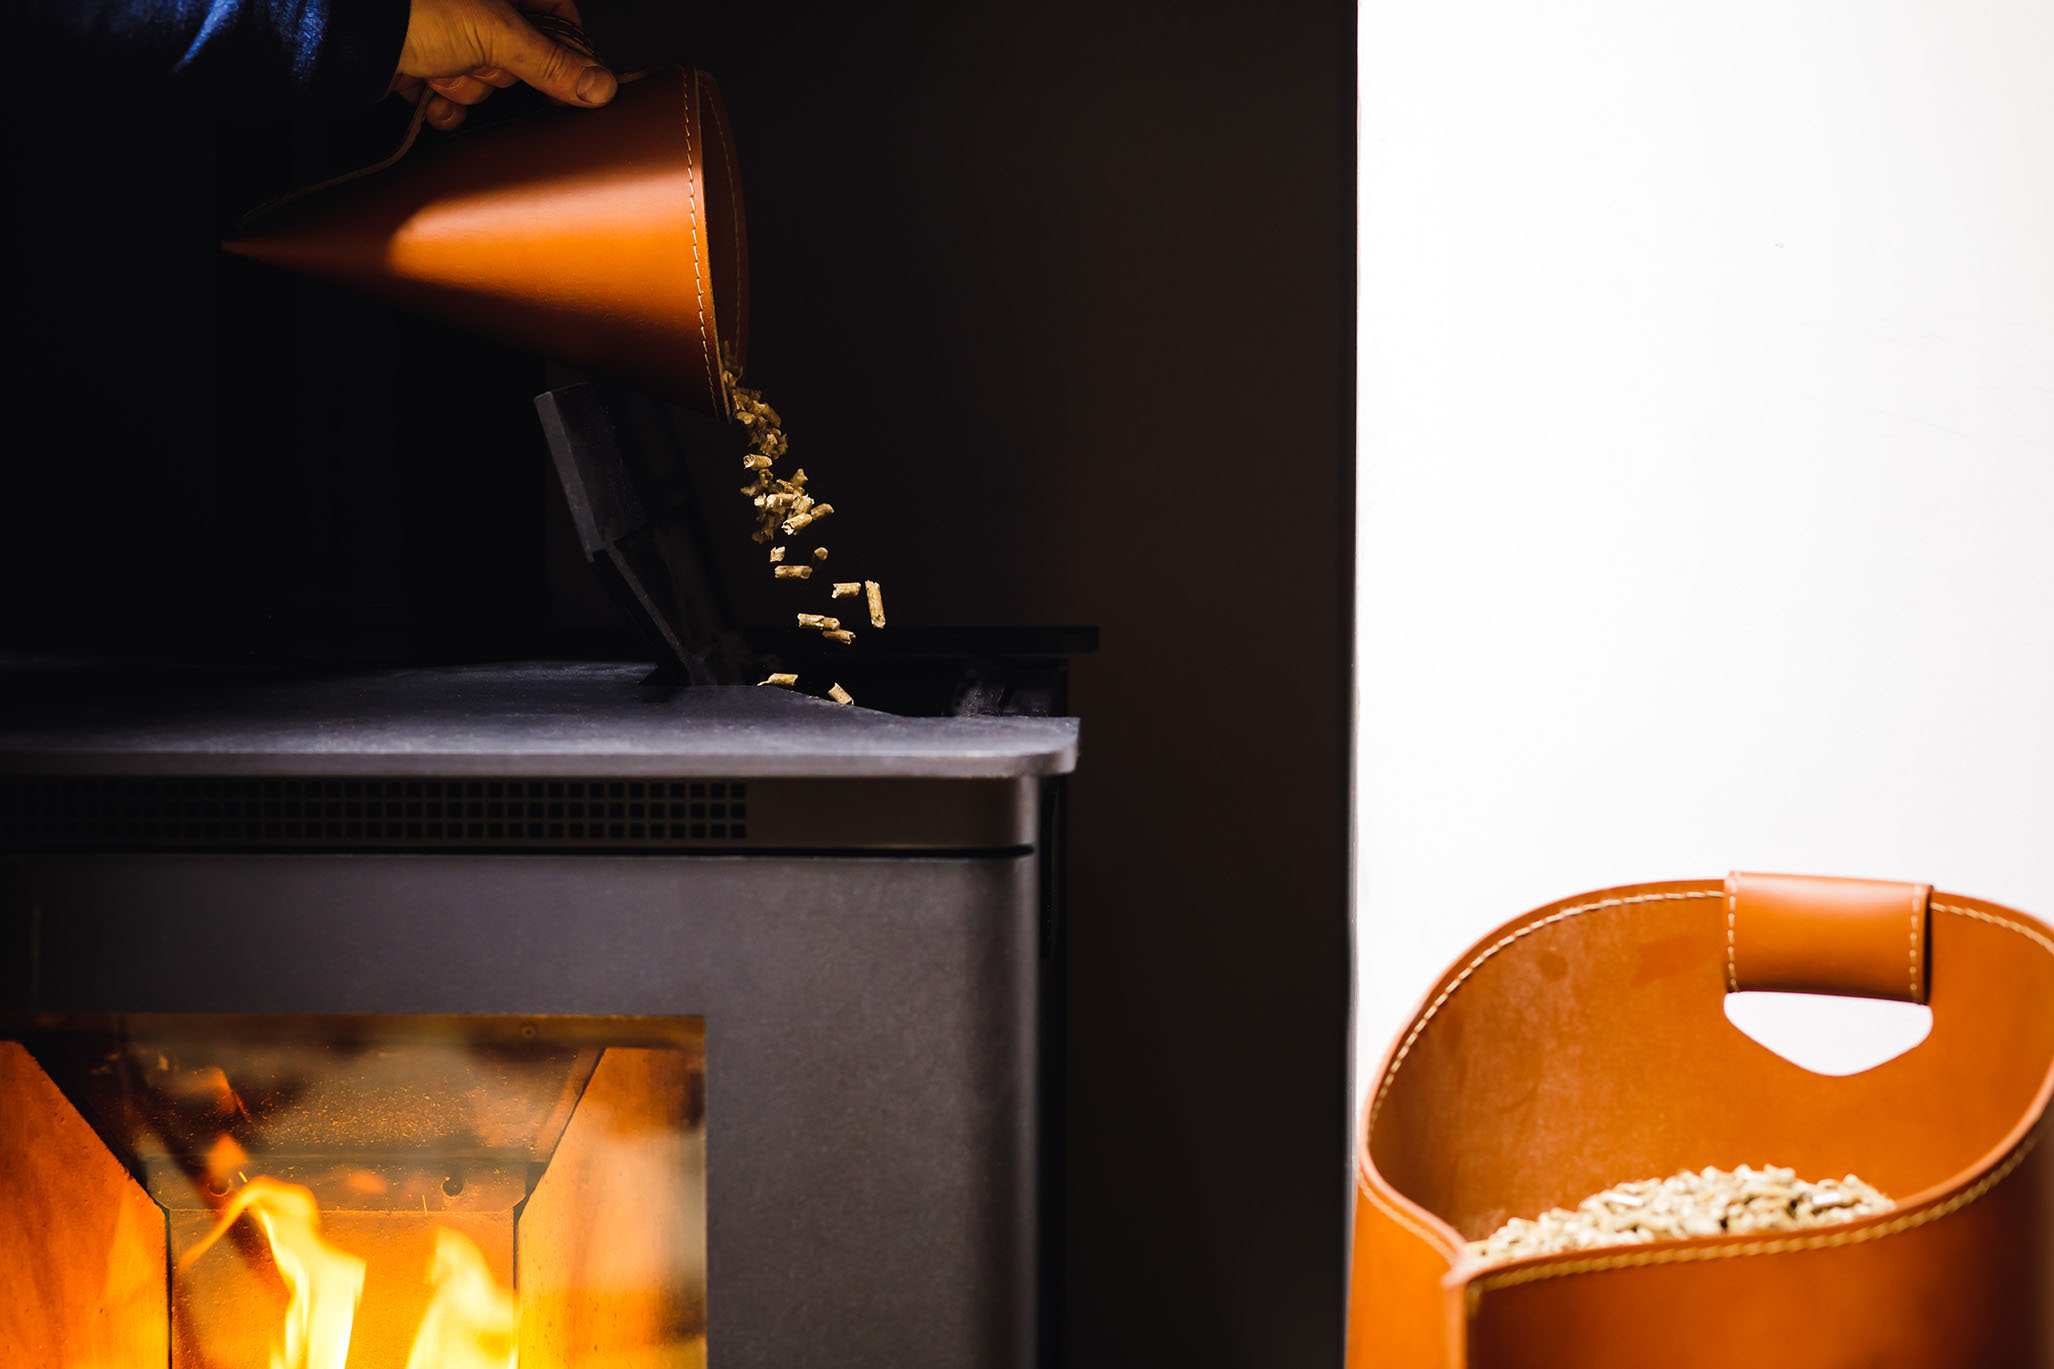 commercial_photographer_wales_island_stoves2.jpg